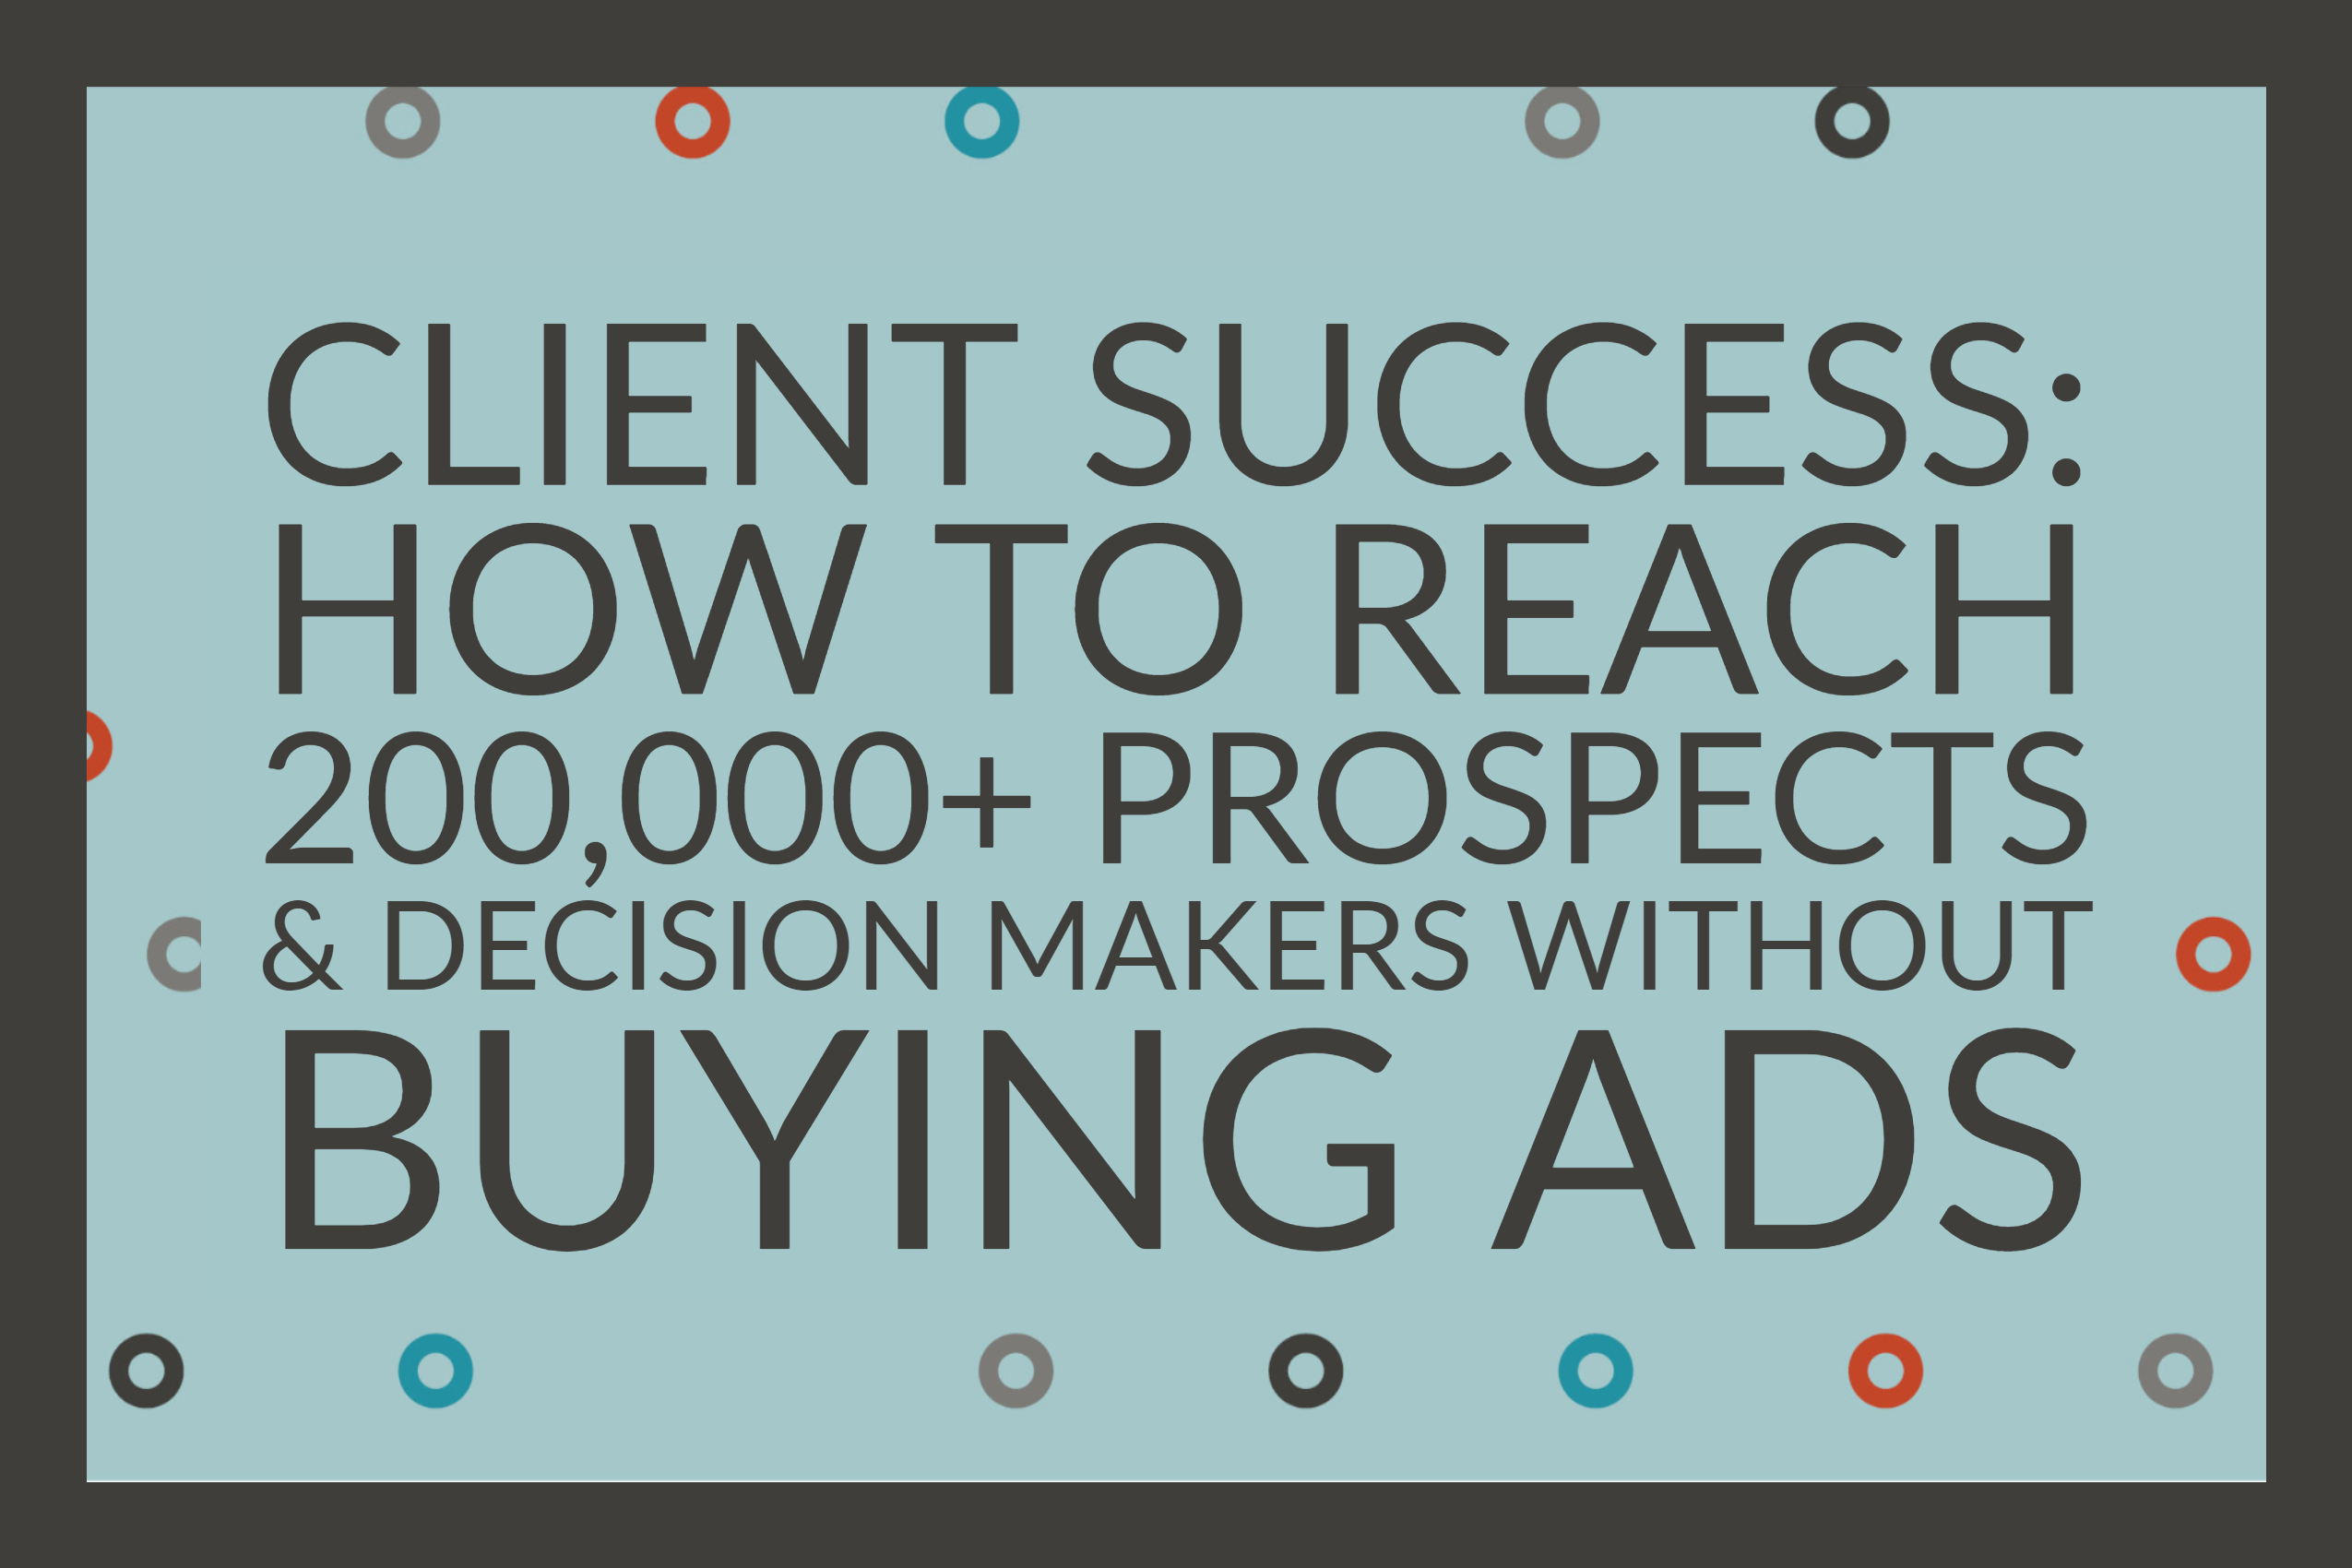 Client Success_ How To Reach 200,000+ Prospects & Decision Makers Without Buying Ads